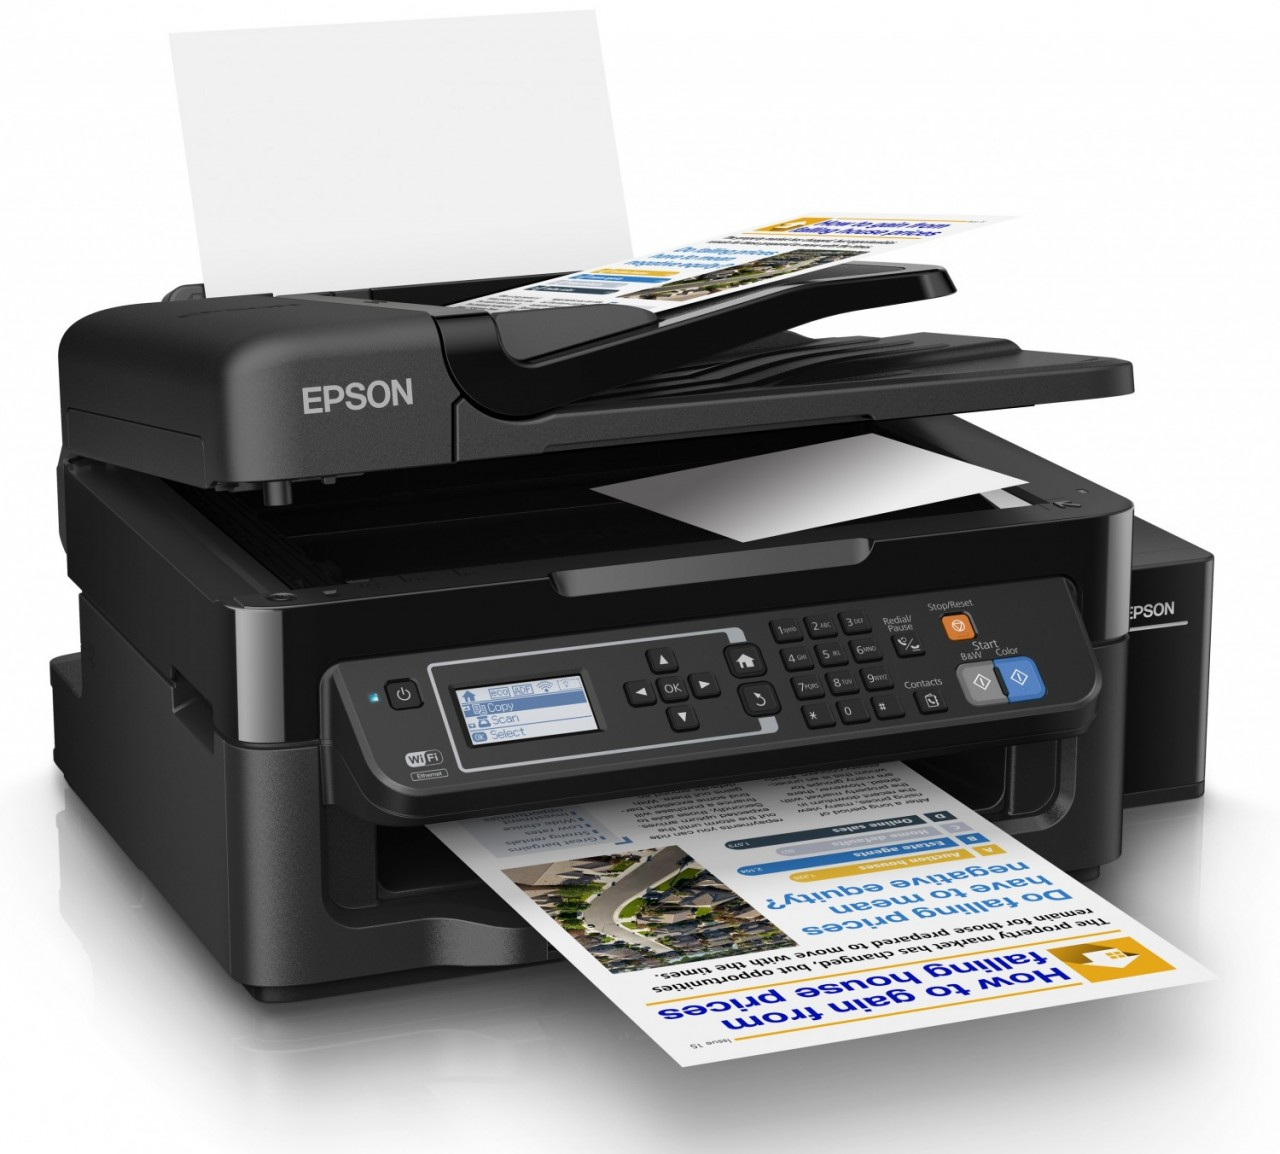 a3531ccced9b Epson L565 PRINT SCANNER COPY FAX Price In Pakistan